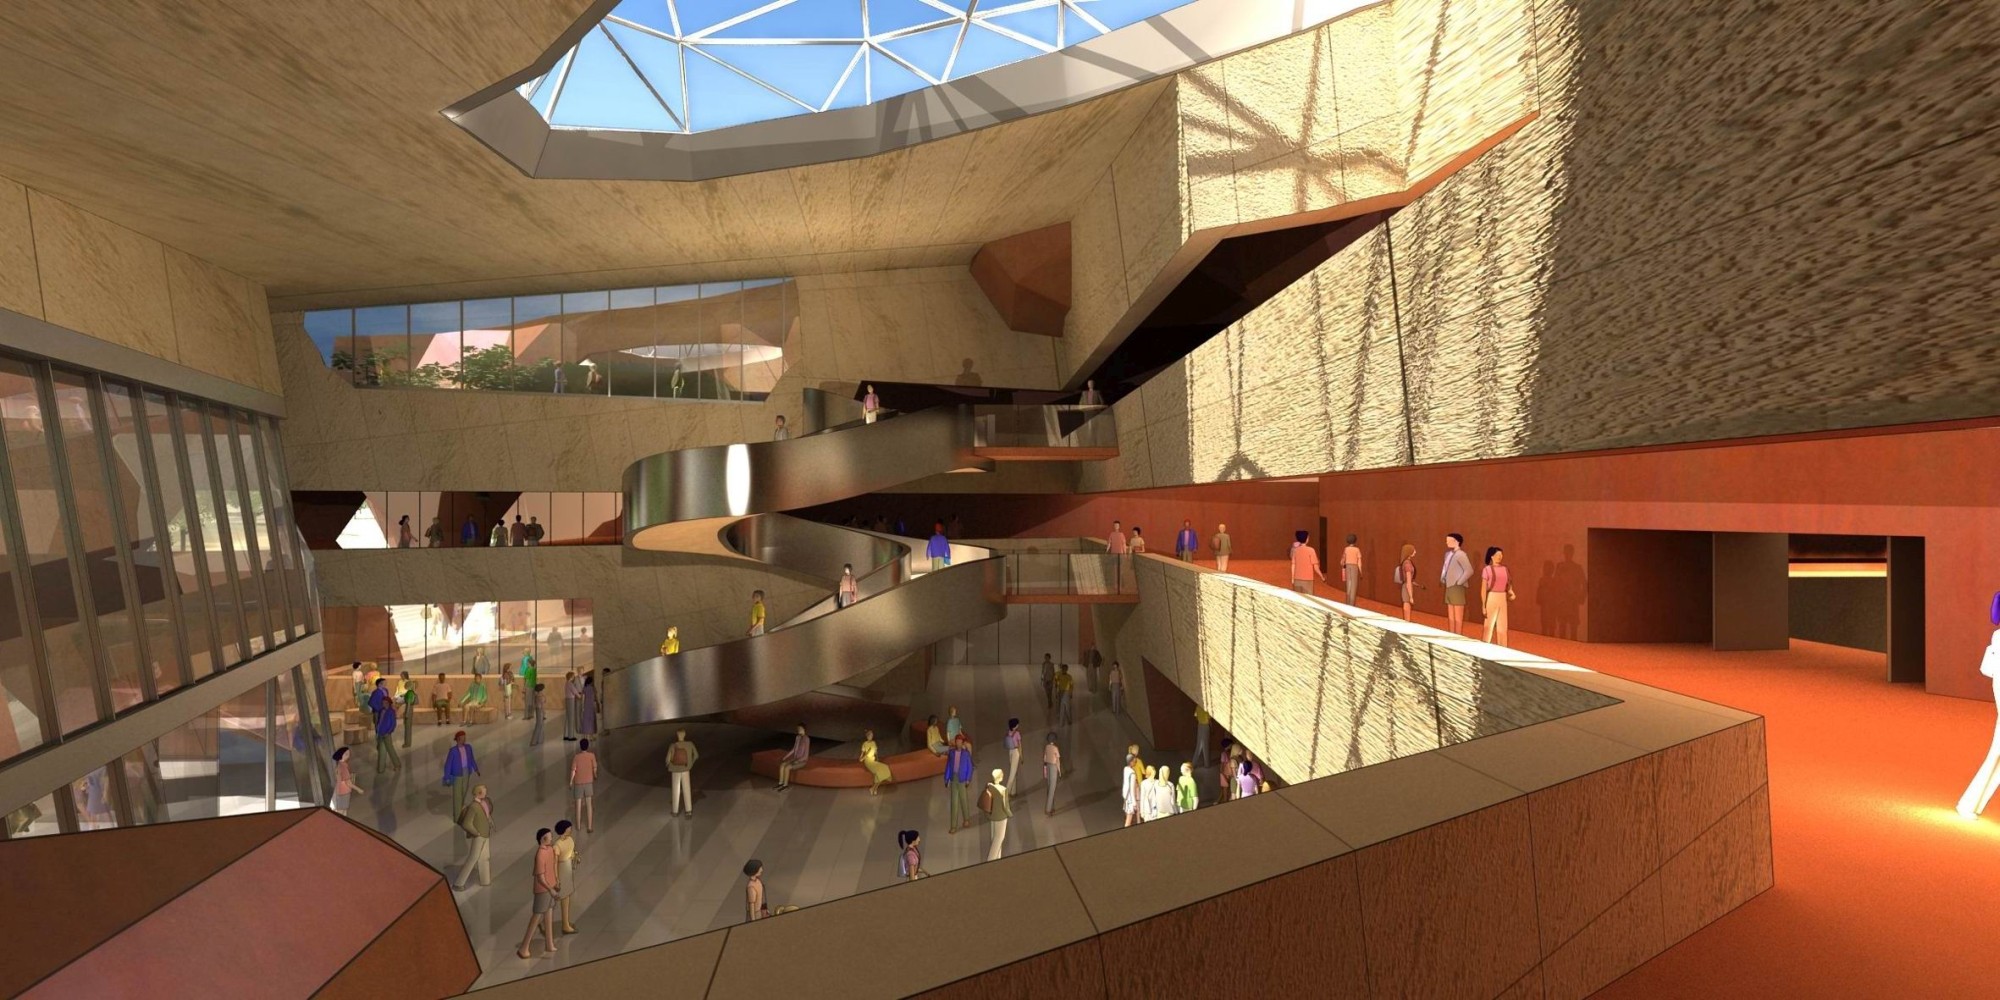 Artist's impression of the view from level one of the Joondalup Performing Arts and Cultural Facility into main entry foyer